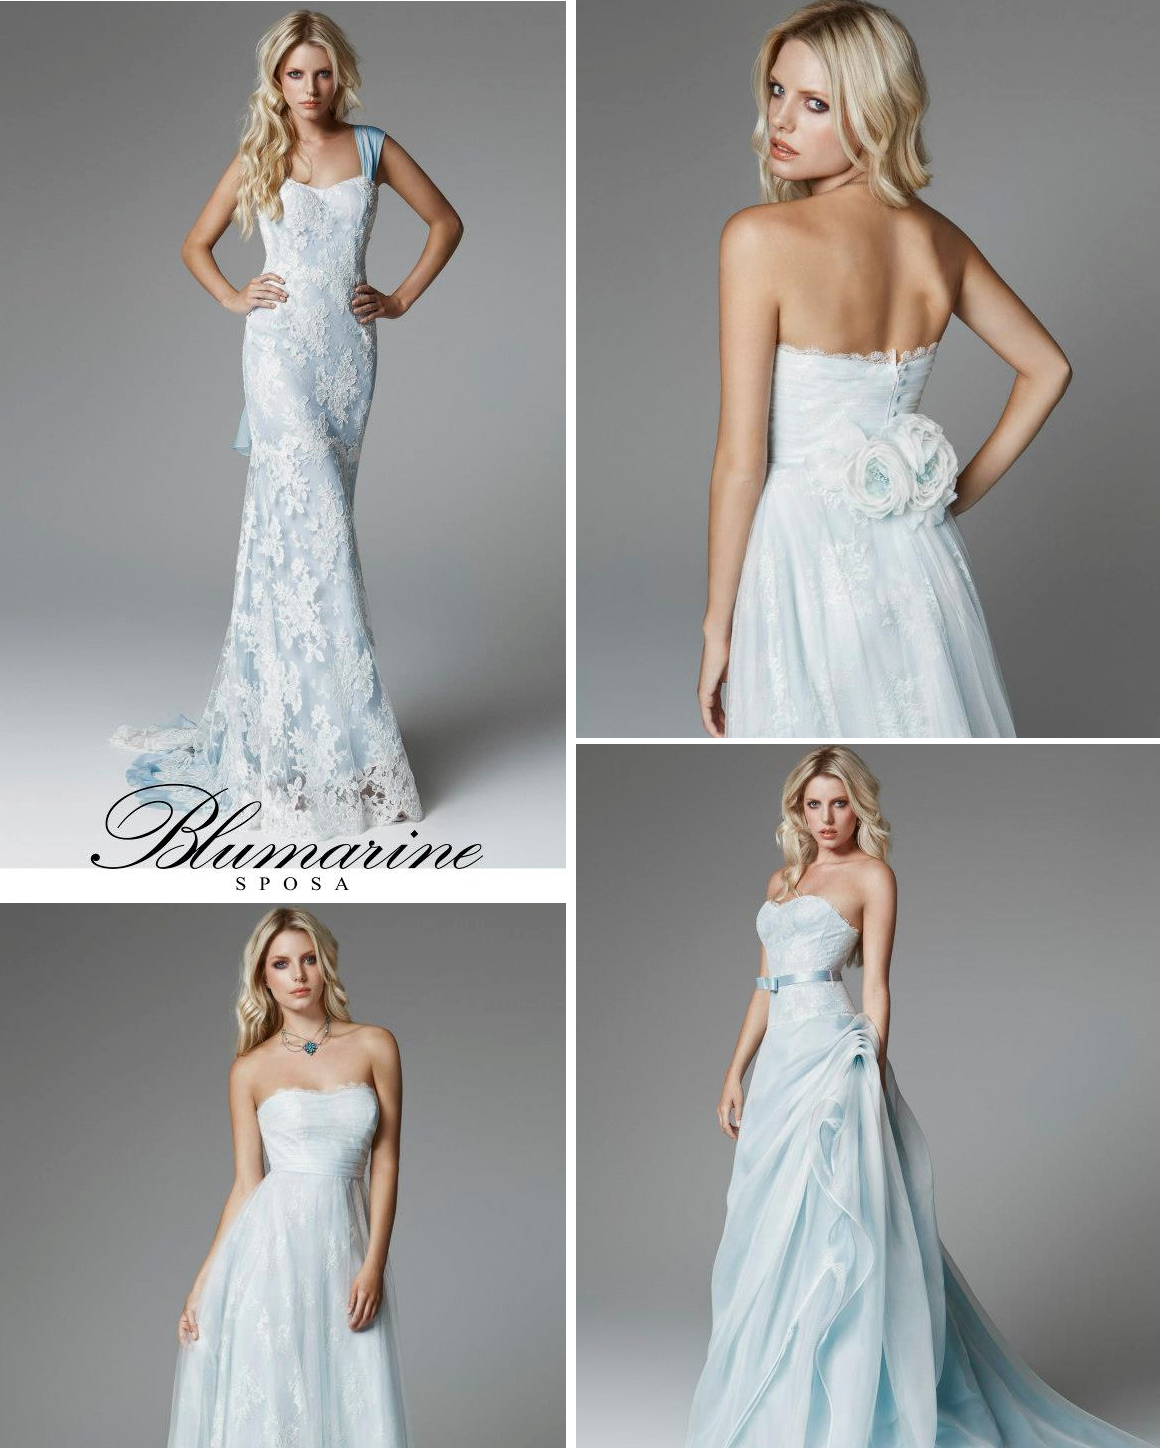 Light blue wedding dresses for 2013 for Light blue and white wedding dresses